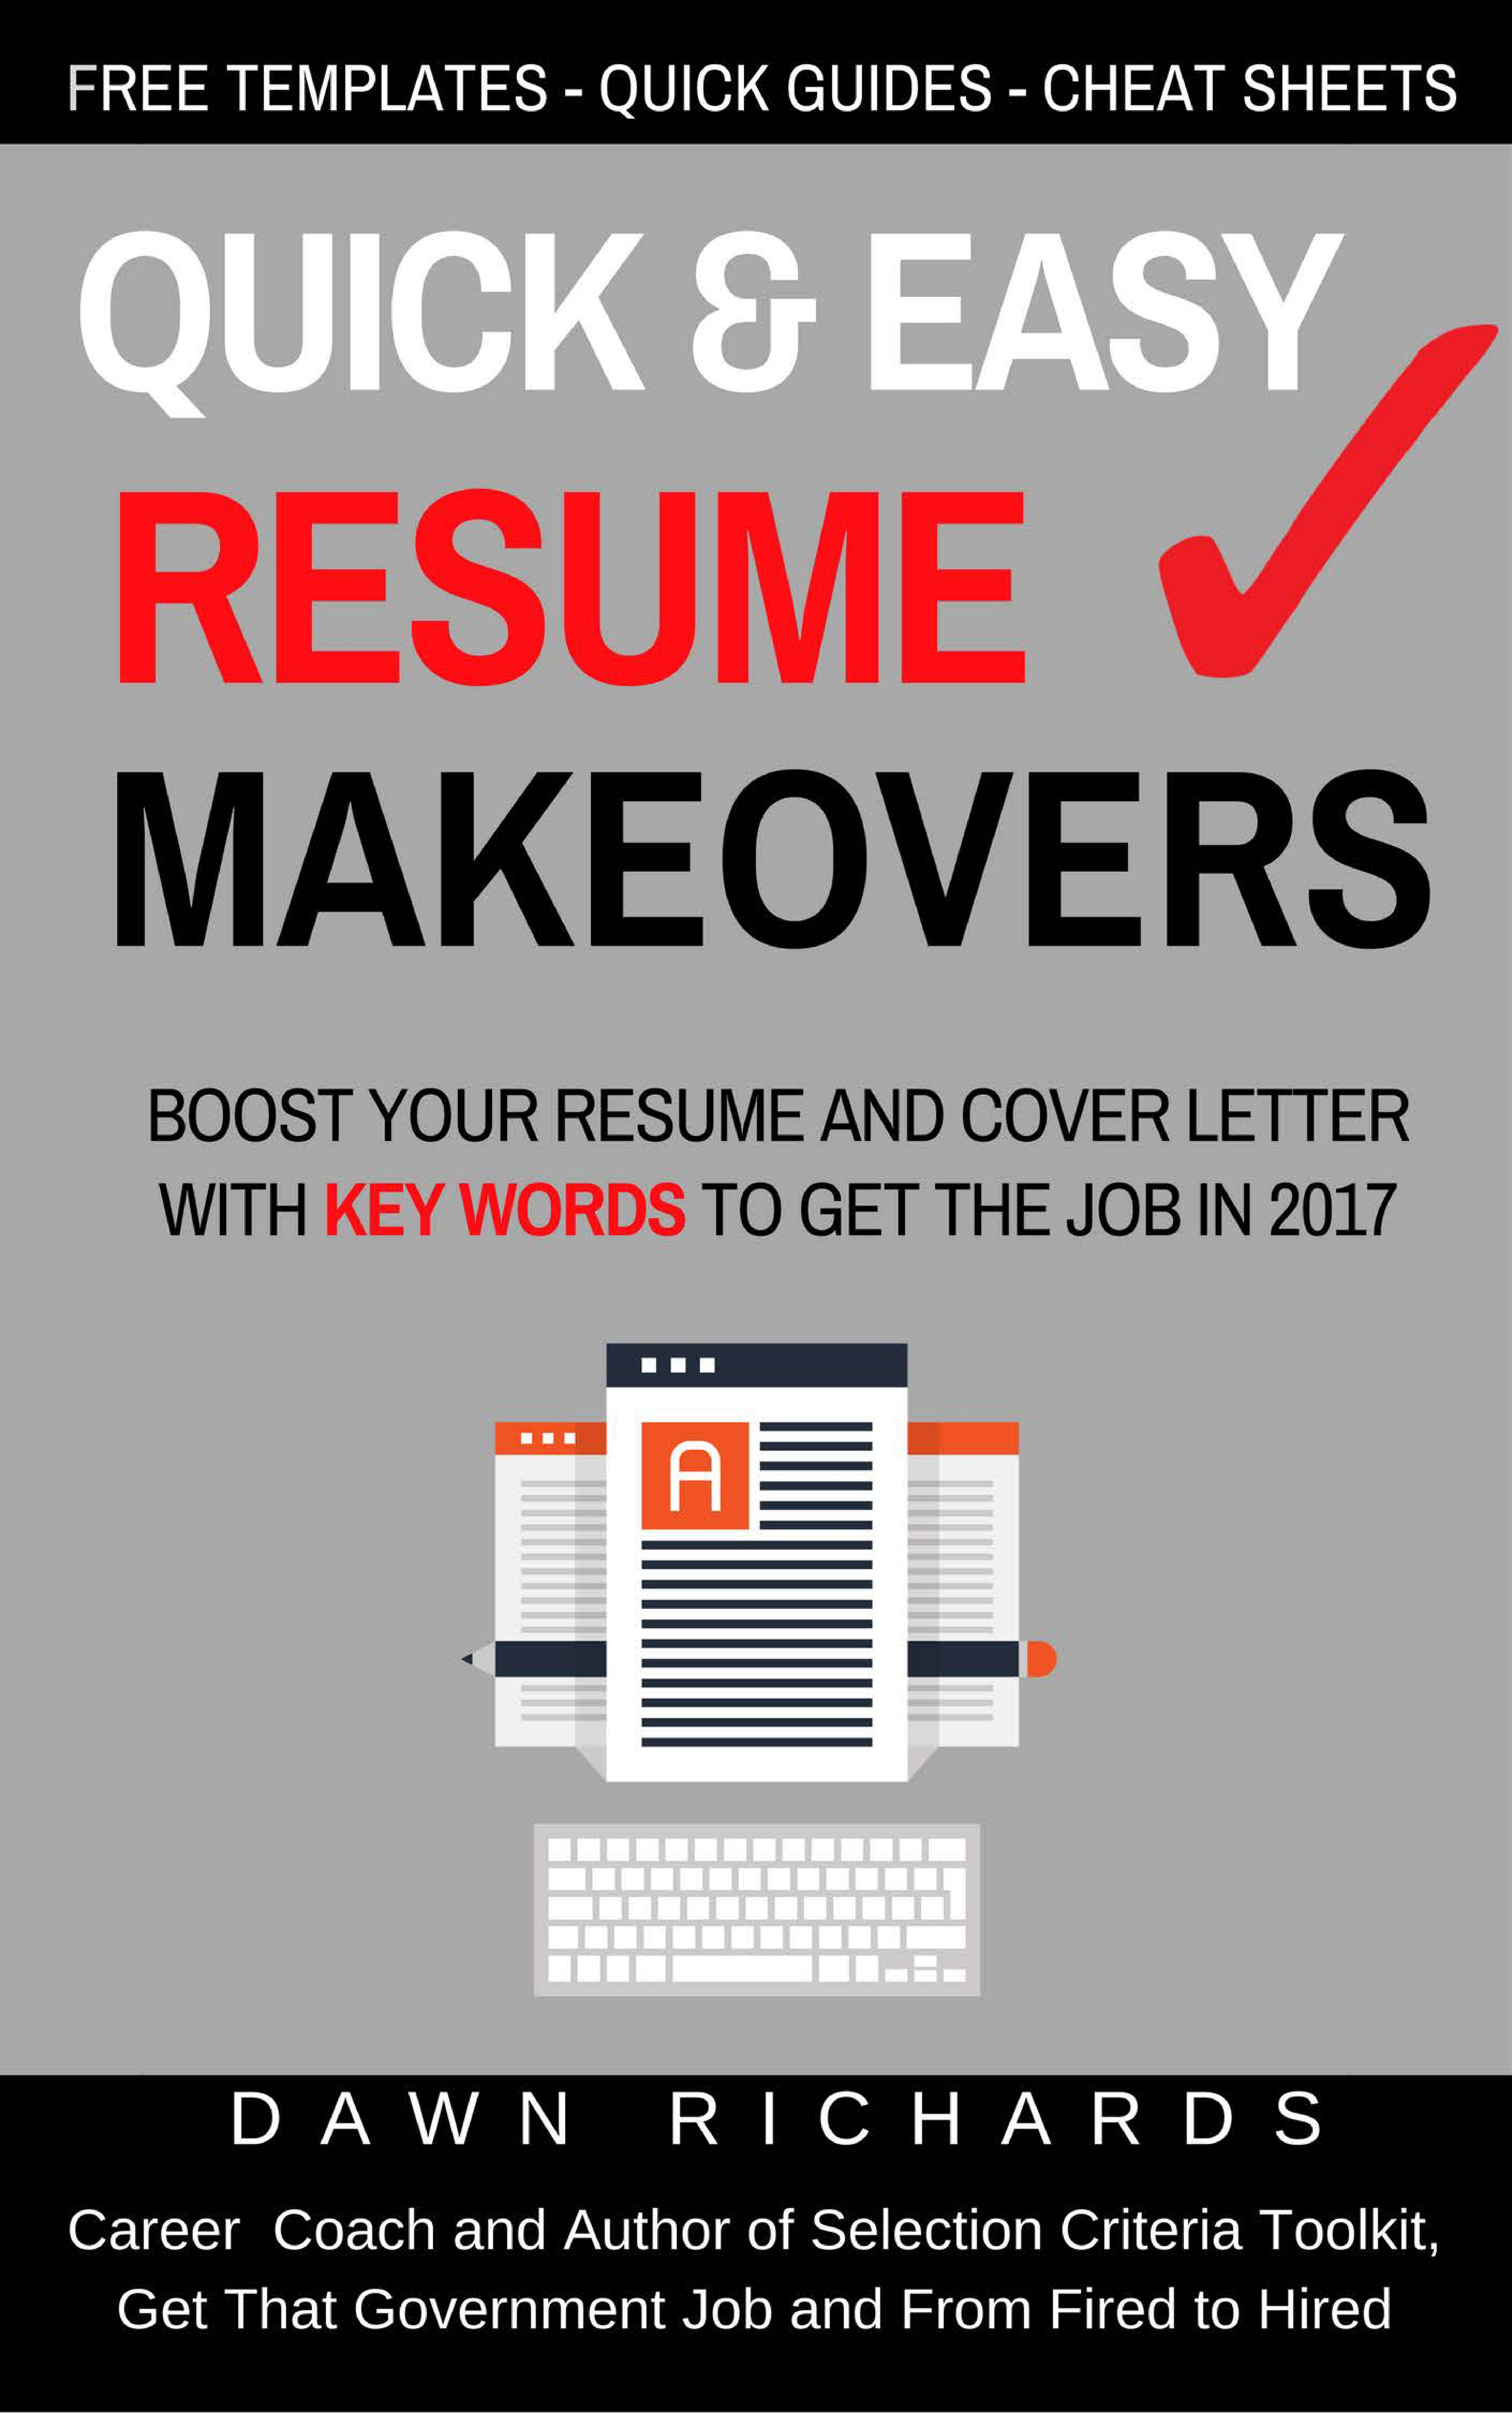 Simple Book Cover Jobs : Quick easy resume makeovers get that government job